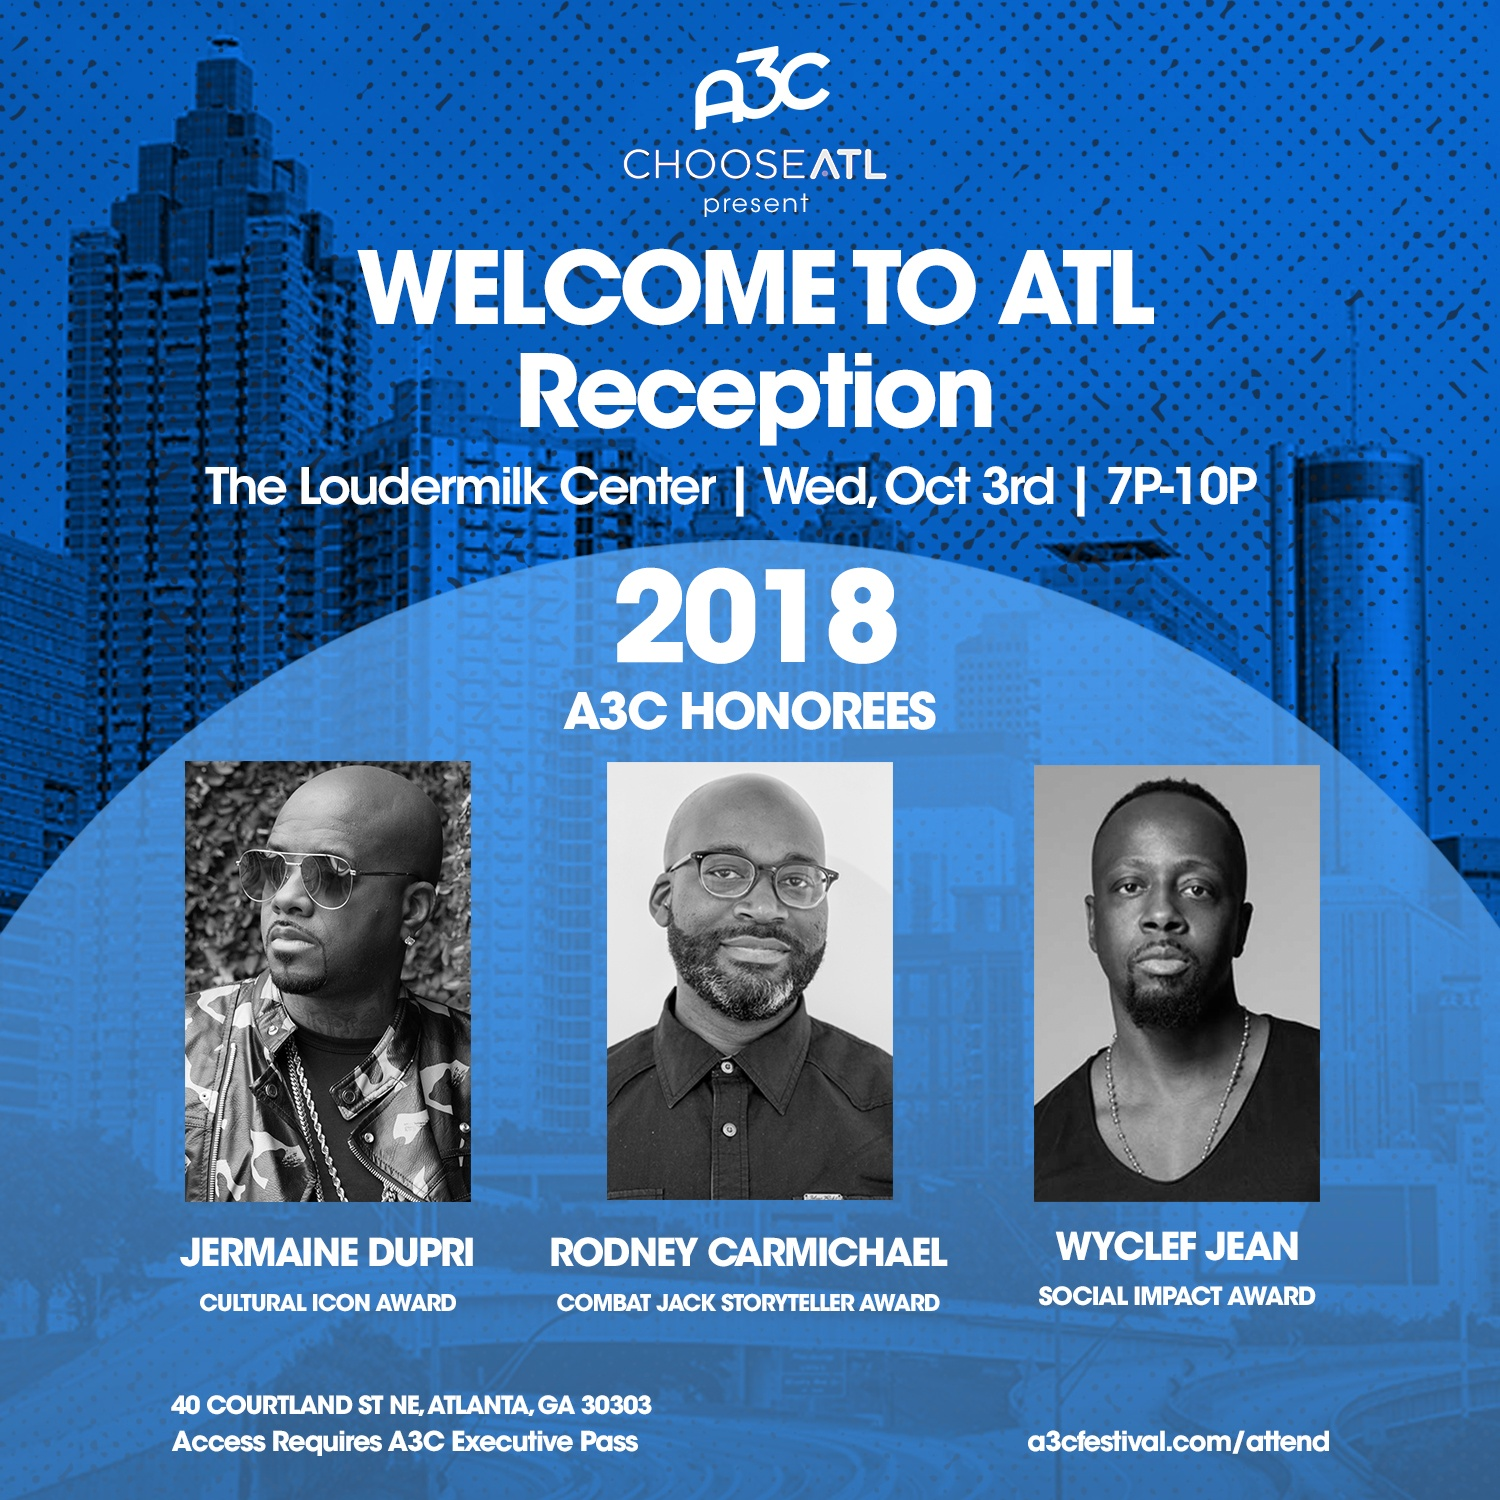 Welcome Reception ATL - A3C 2018